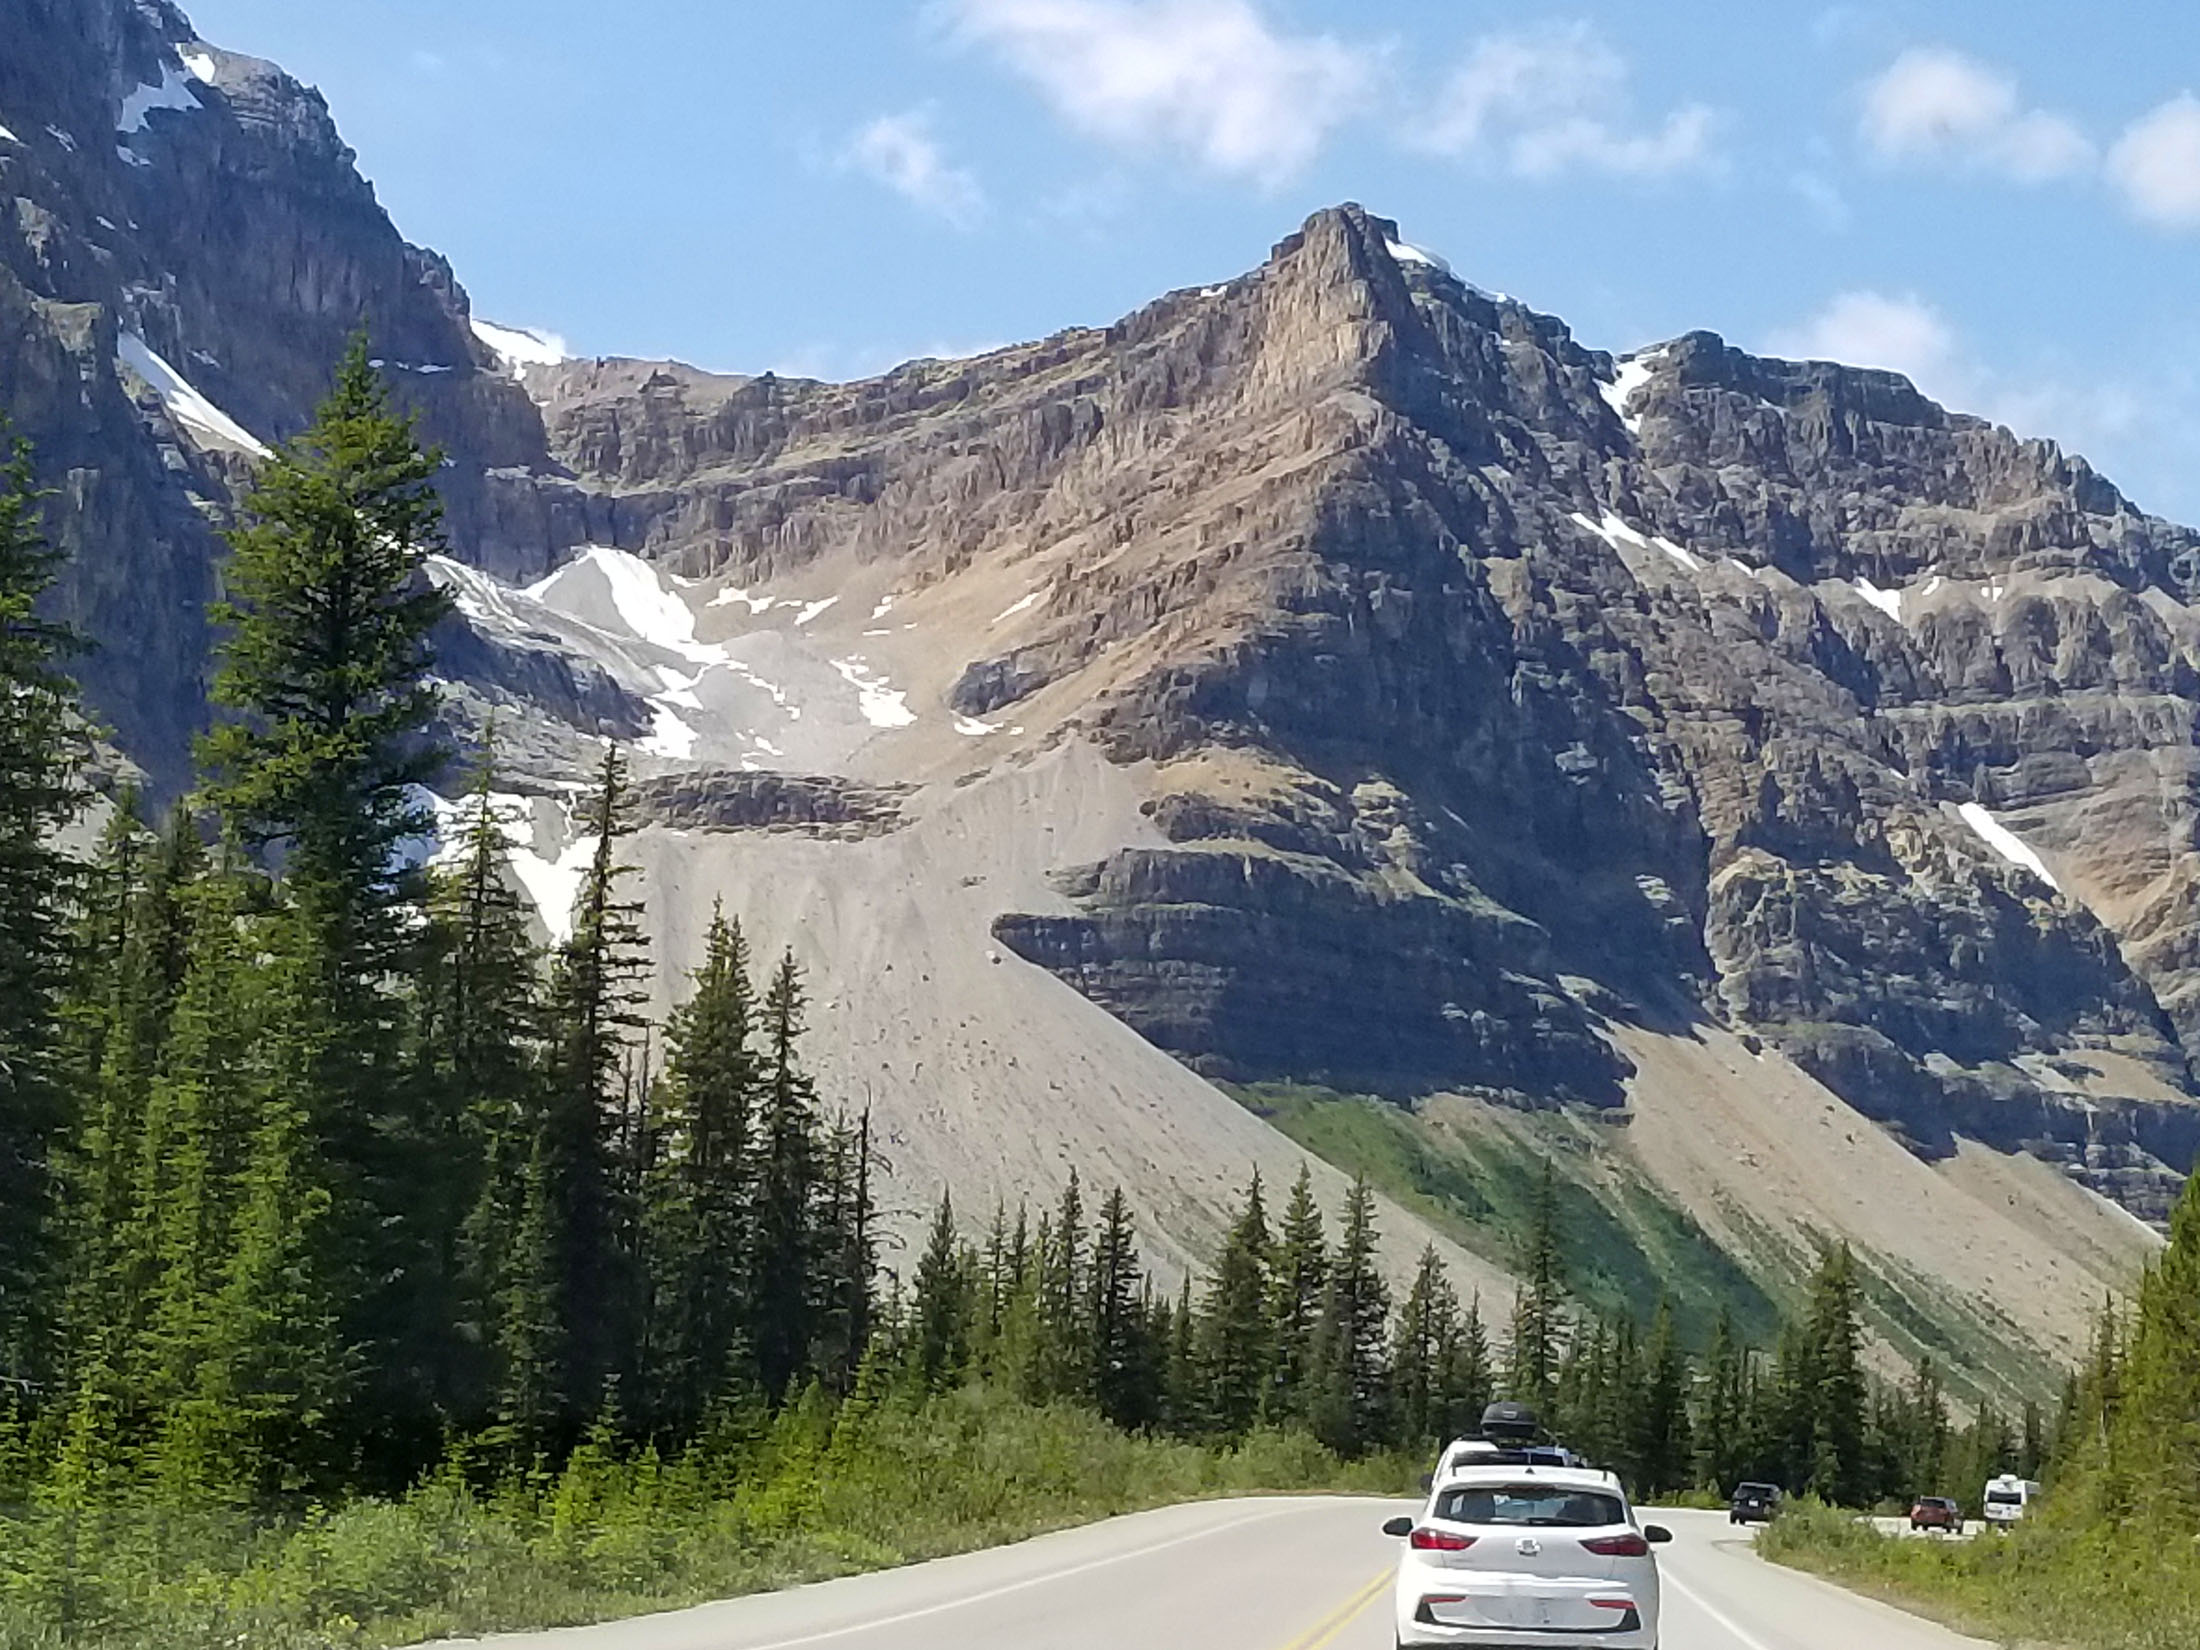 Icefields Parkway is justifiably regarded among the most scenic drives in North America. (Fran Davis/craigslegztravels.com)